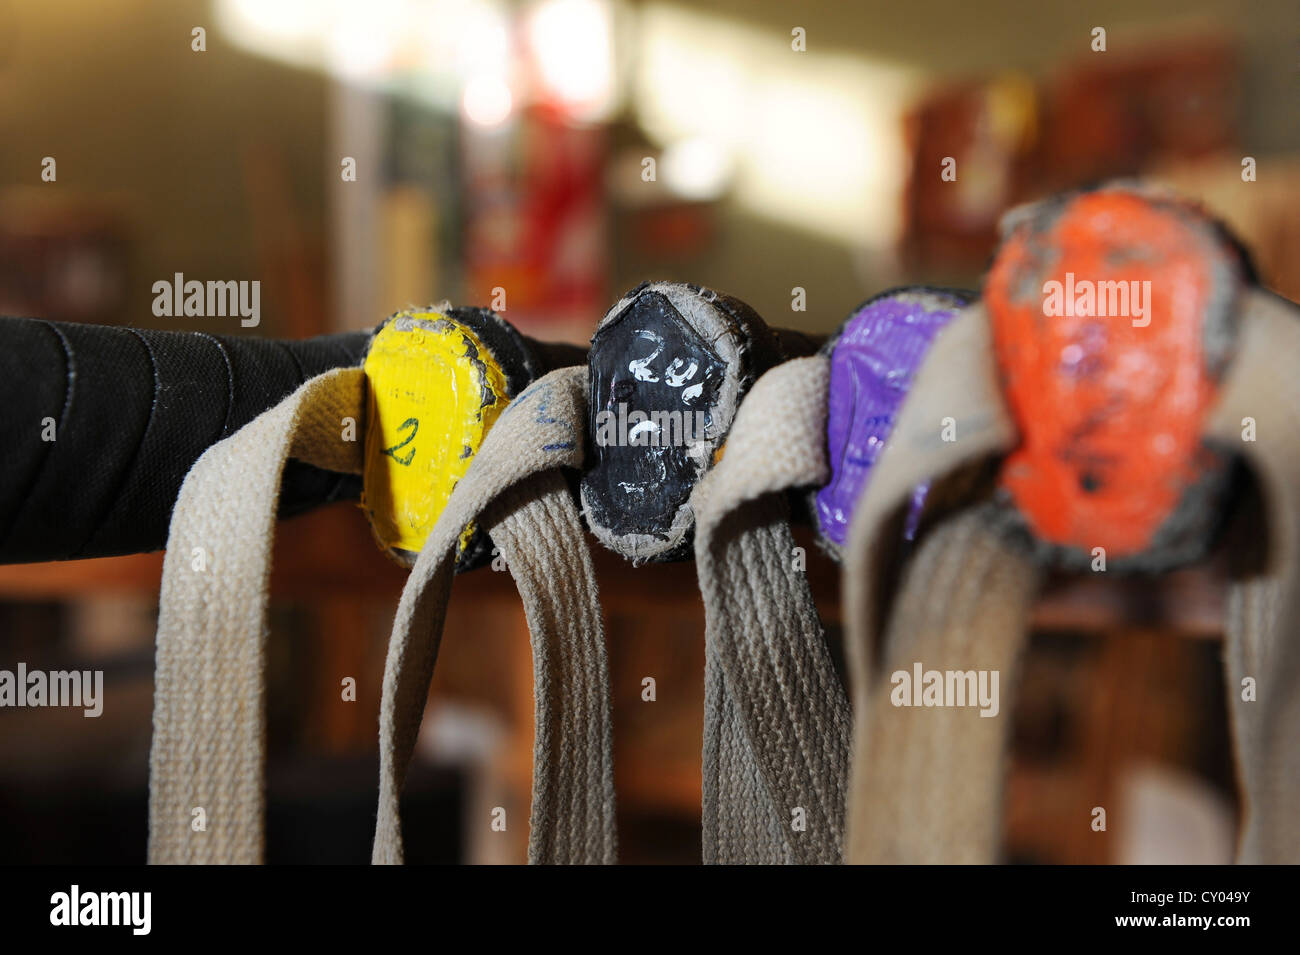 Colour coding for mallets at a polo factory, Zapala, Pilar, Argentina, South America - Stock Image